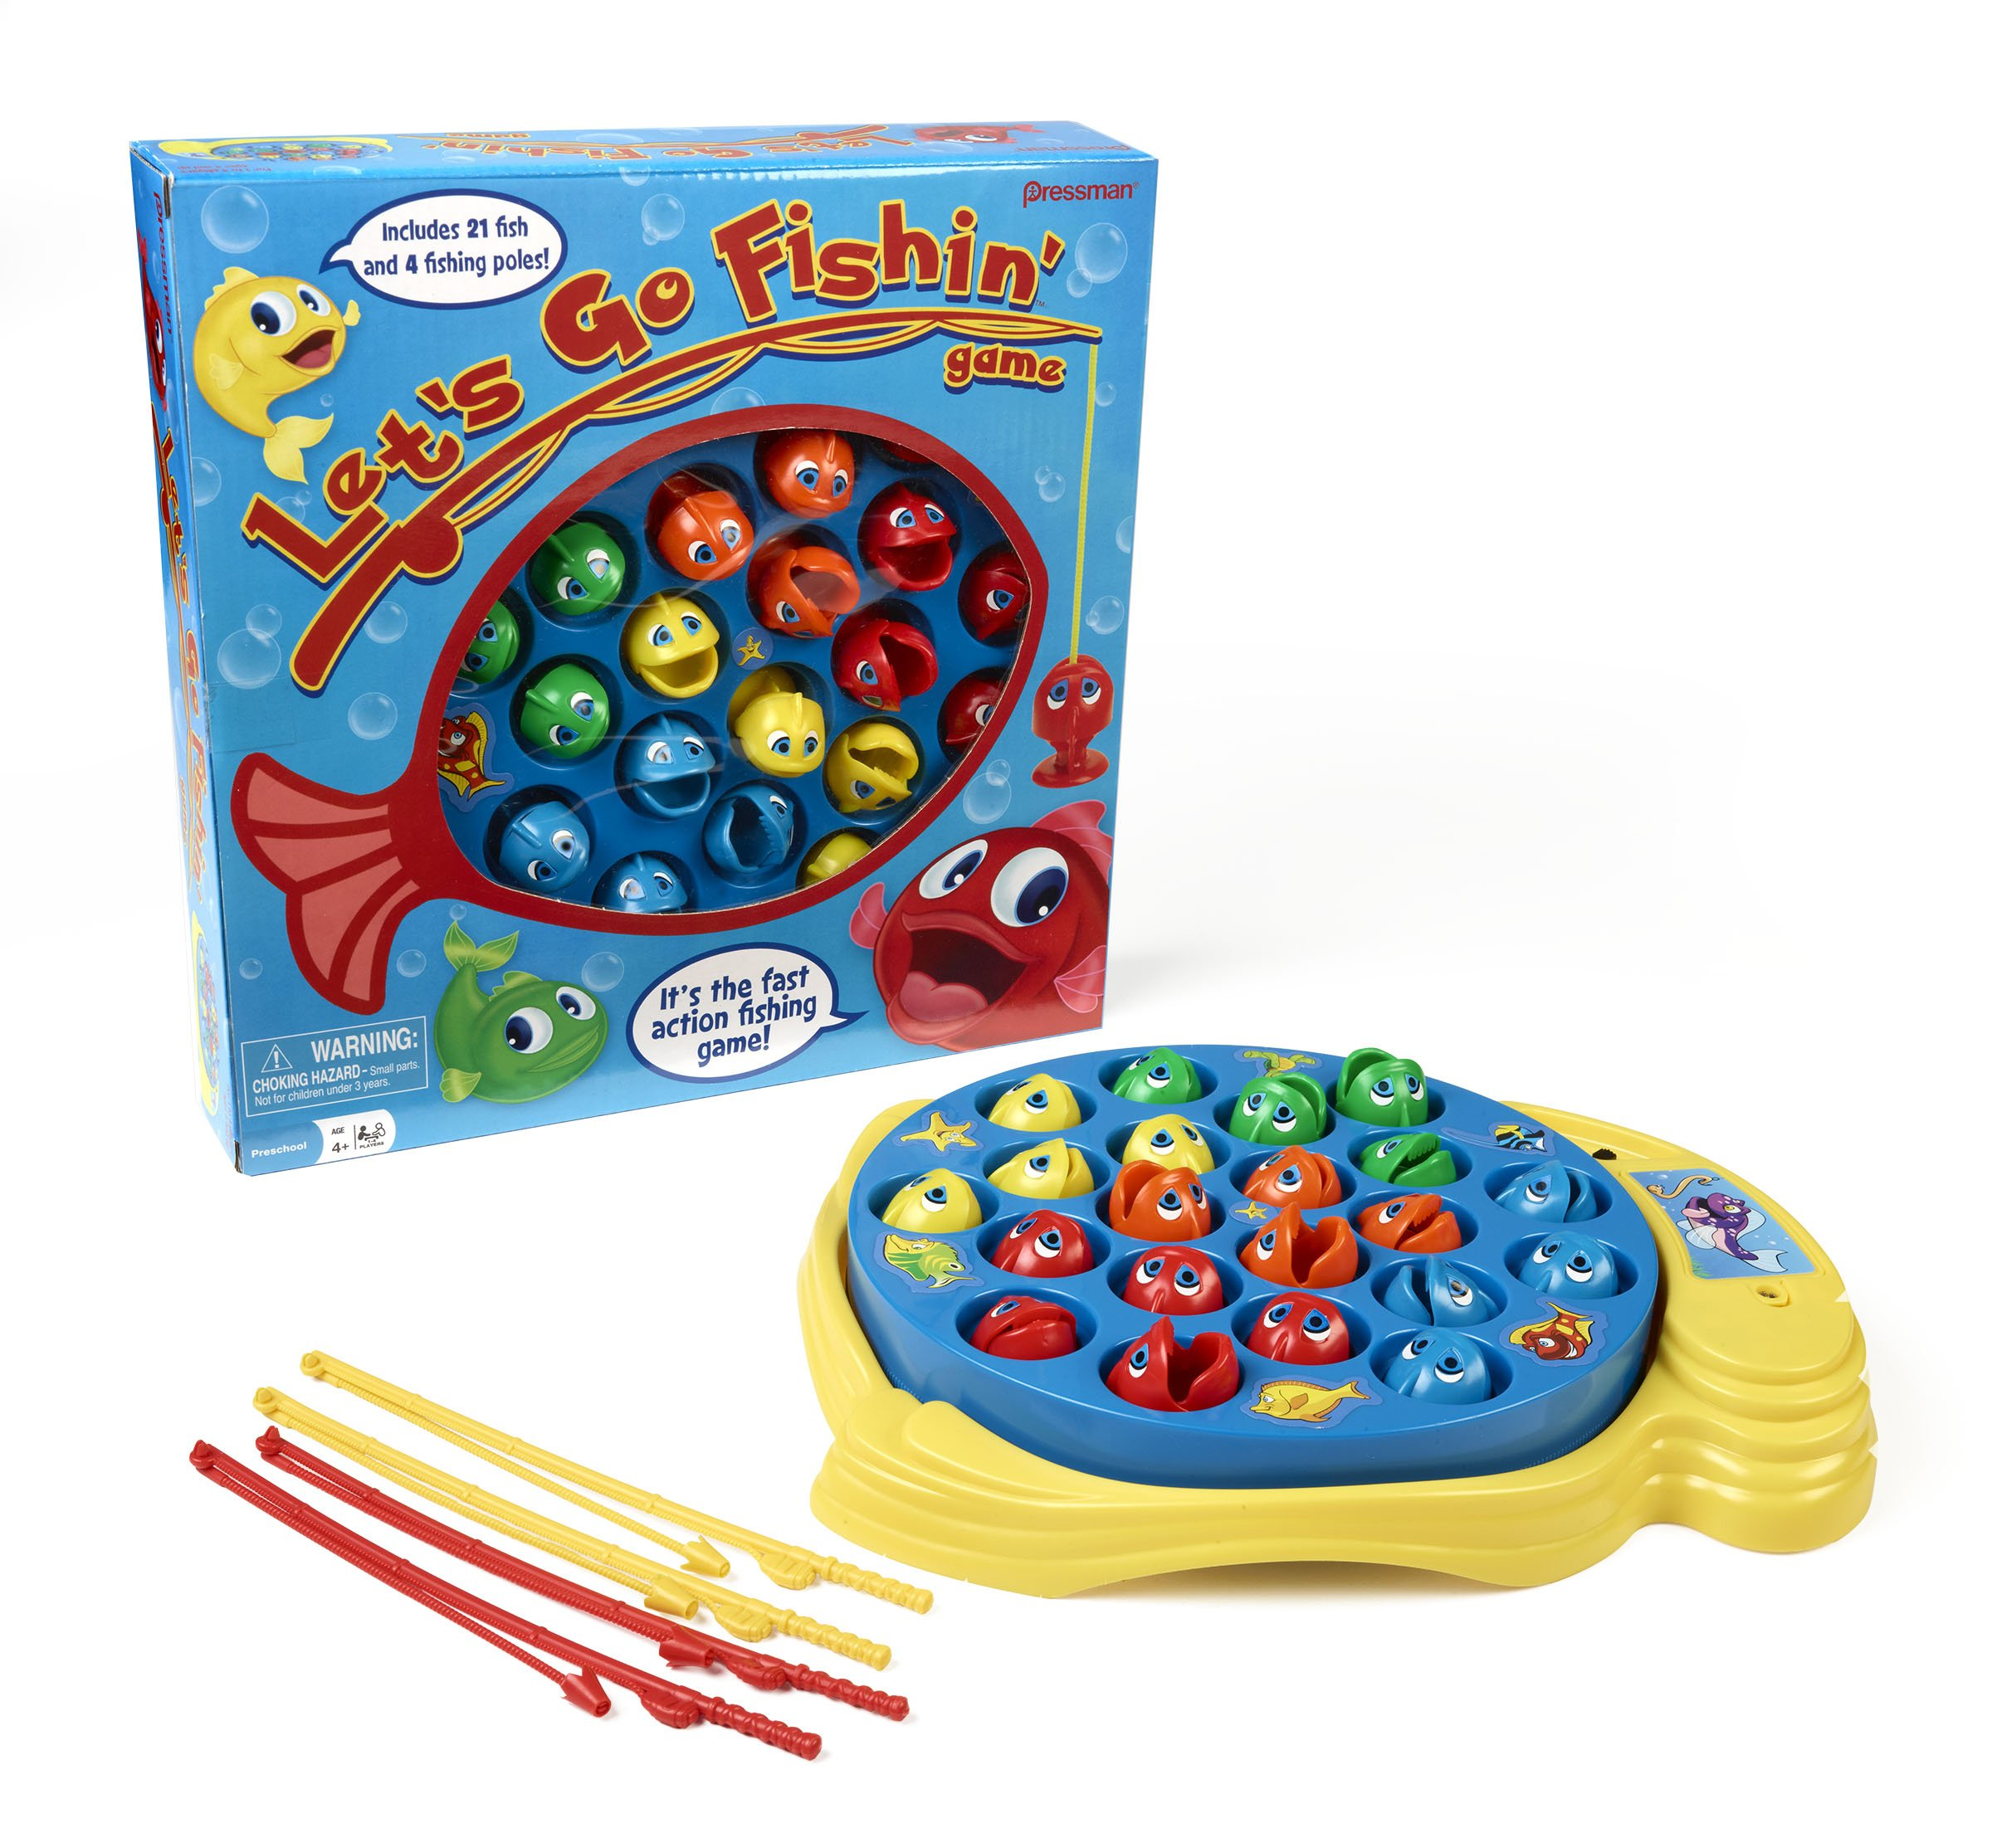 Fishing Game Toy : Lets go fishin original classic fishing toy for kids